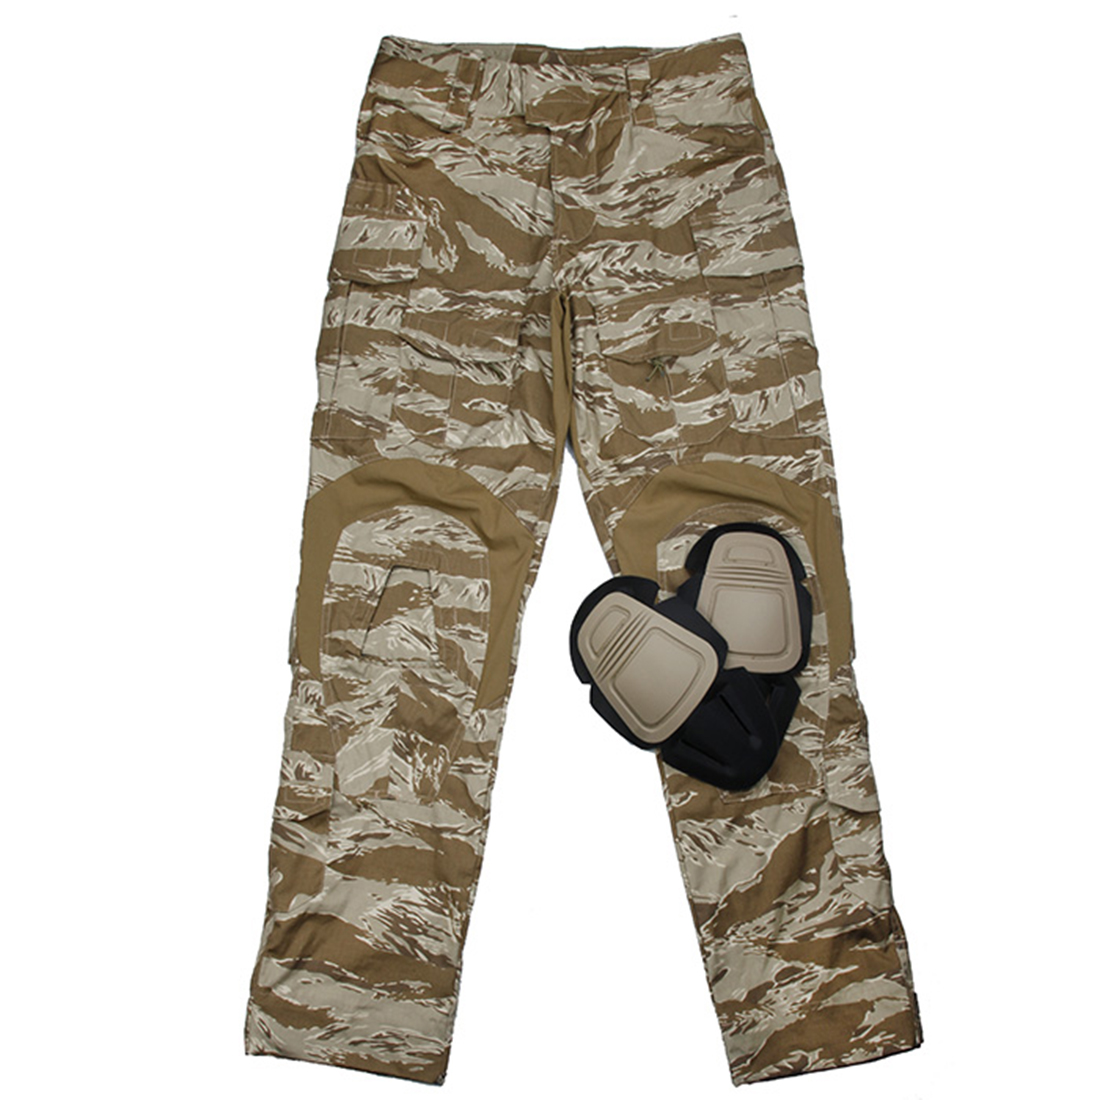 TMC <font><b>G3</b></font> <font><b>Combat</b></font> <font><b>Pants</b></font> Tactical Hunting <font><b>Pants</b></font> with Kneepads for Outdoor Airsoft War Game Tactical Gear- Tigerstripe Camouflage image